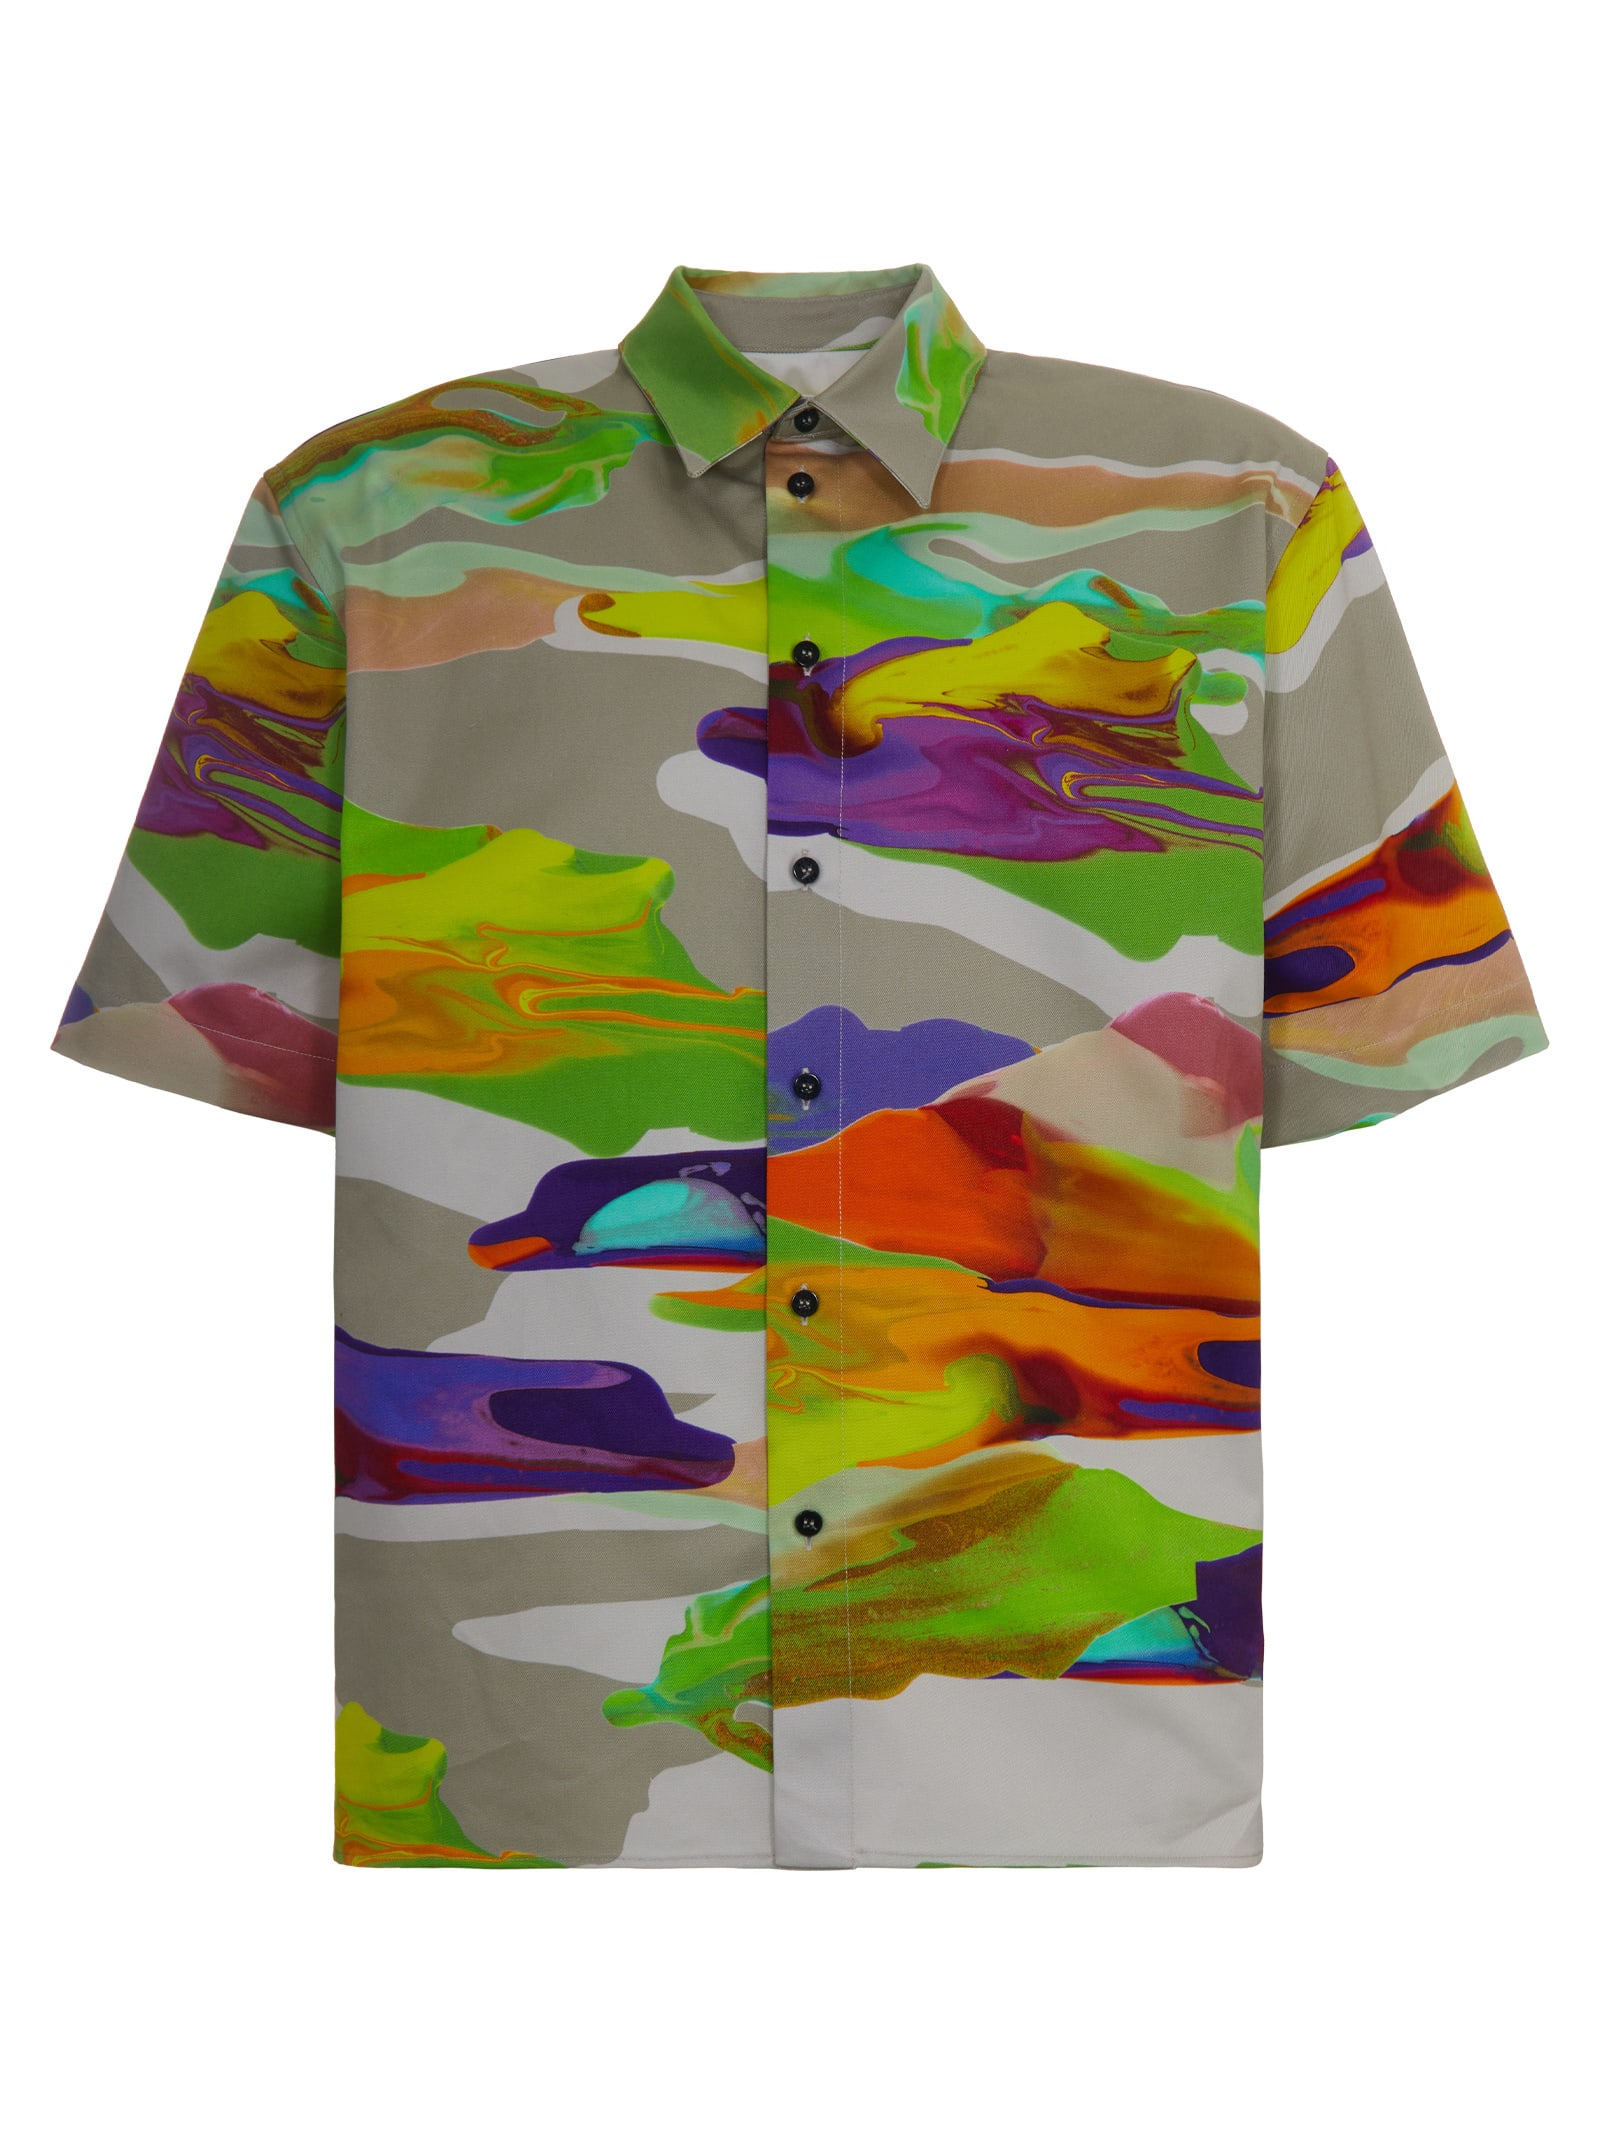 Msgm ABSTRACT SHIRT